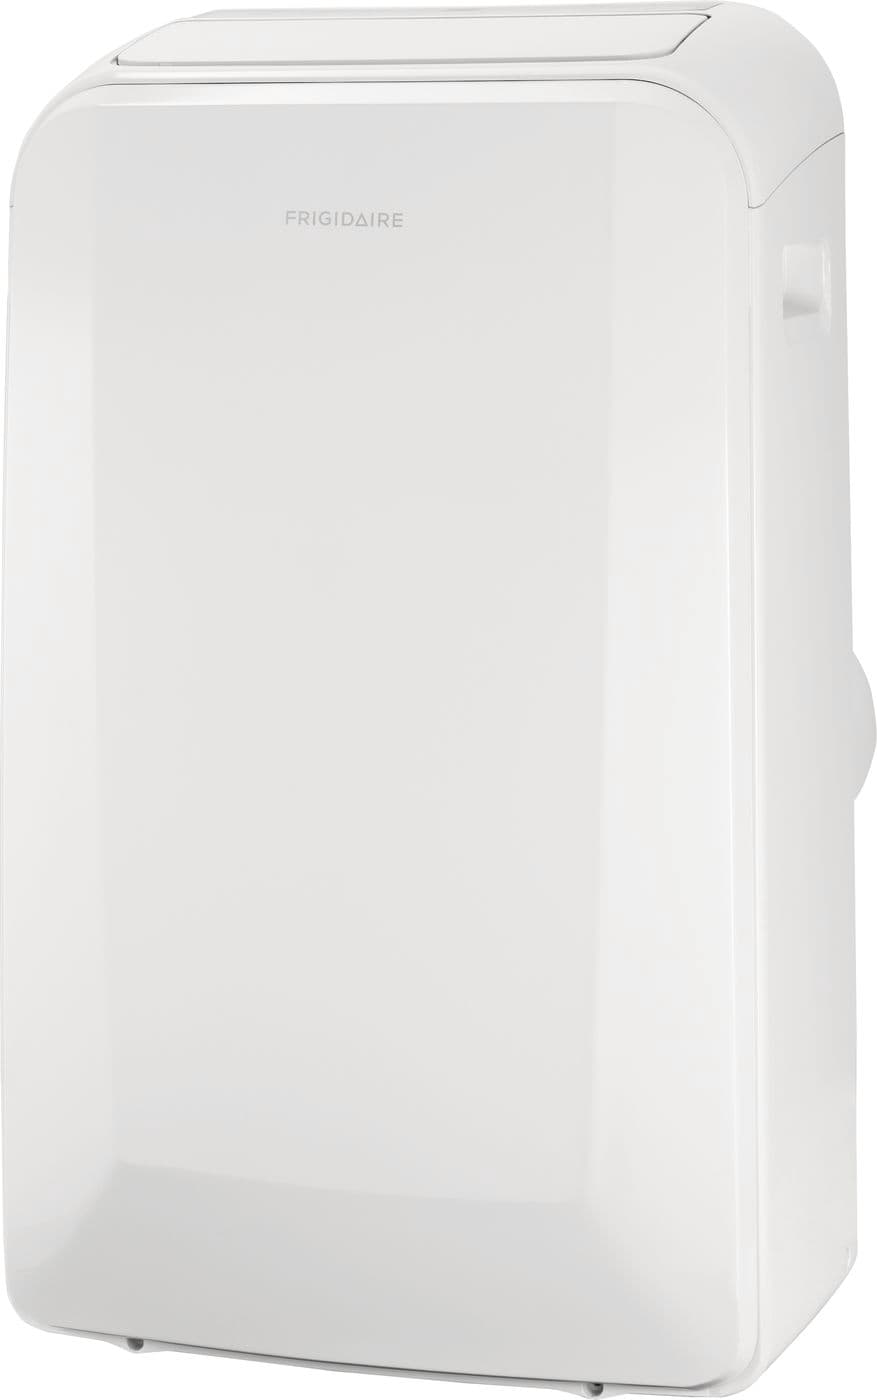 Model: FFPH1222R1 | Frigidaire 12,000 BTU Portable Room Air Conditioner with Supplemental Heat